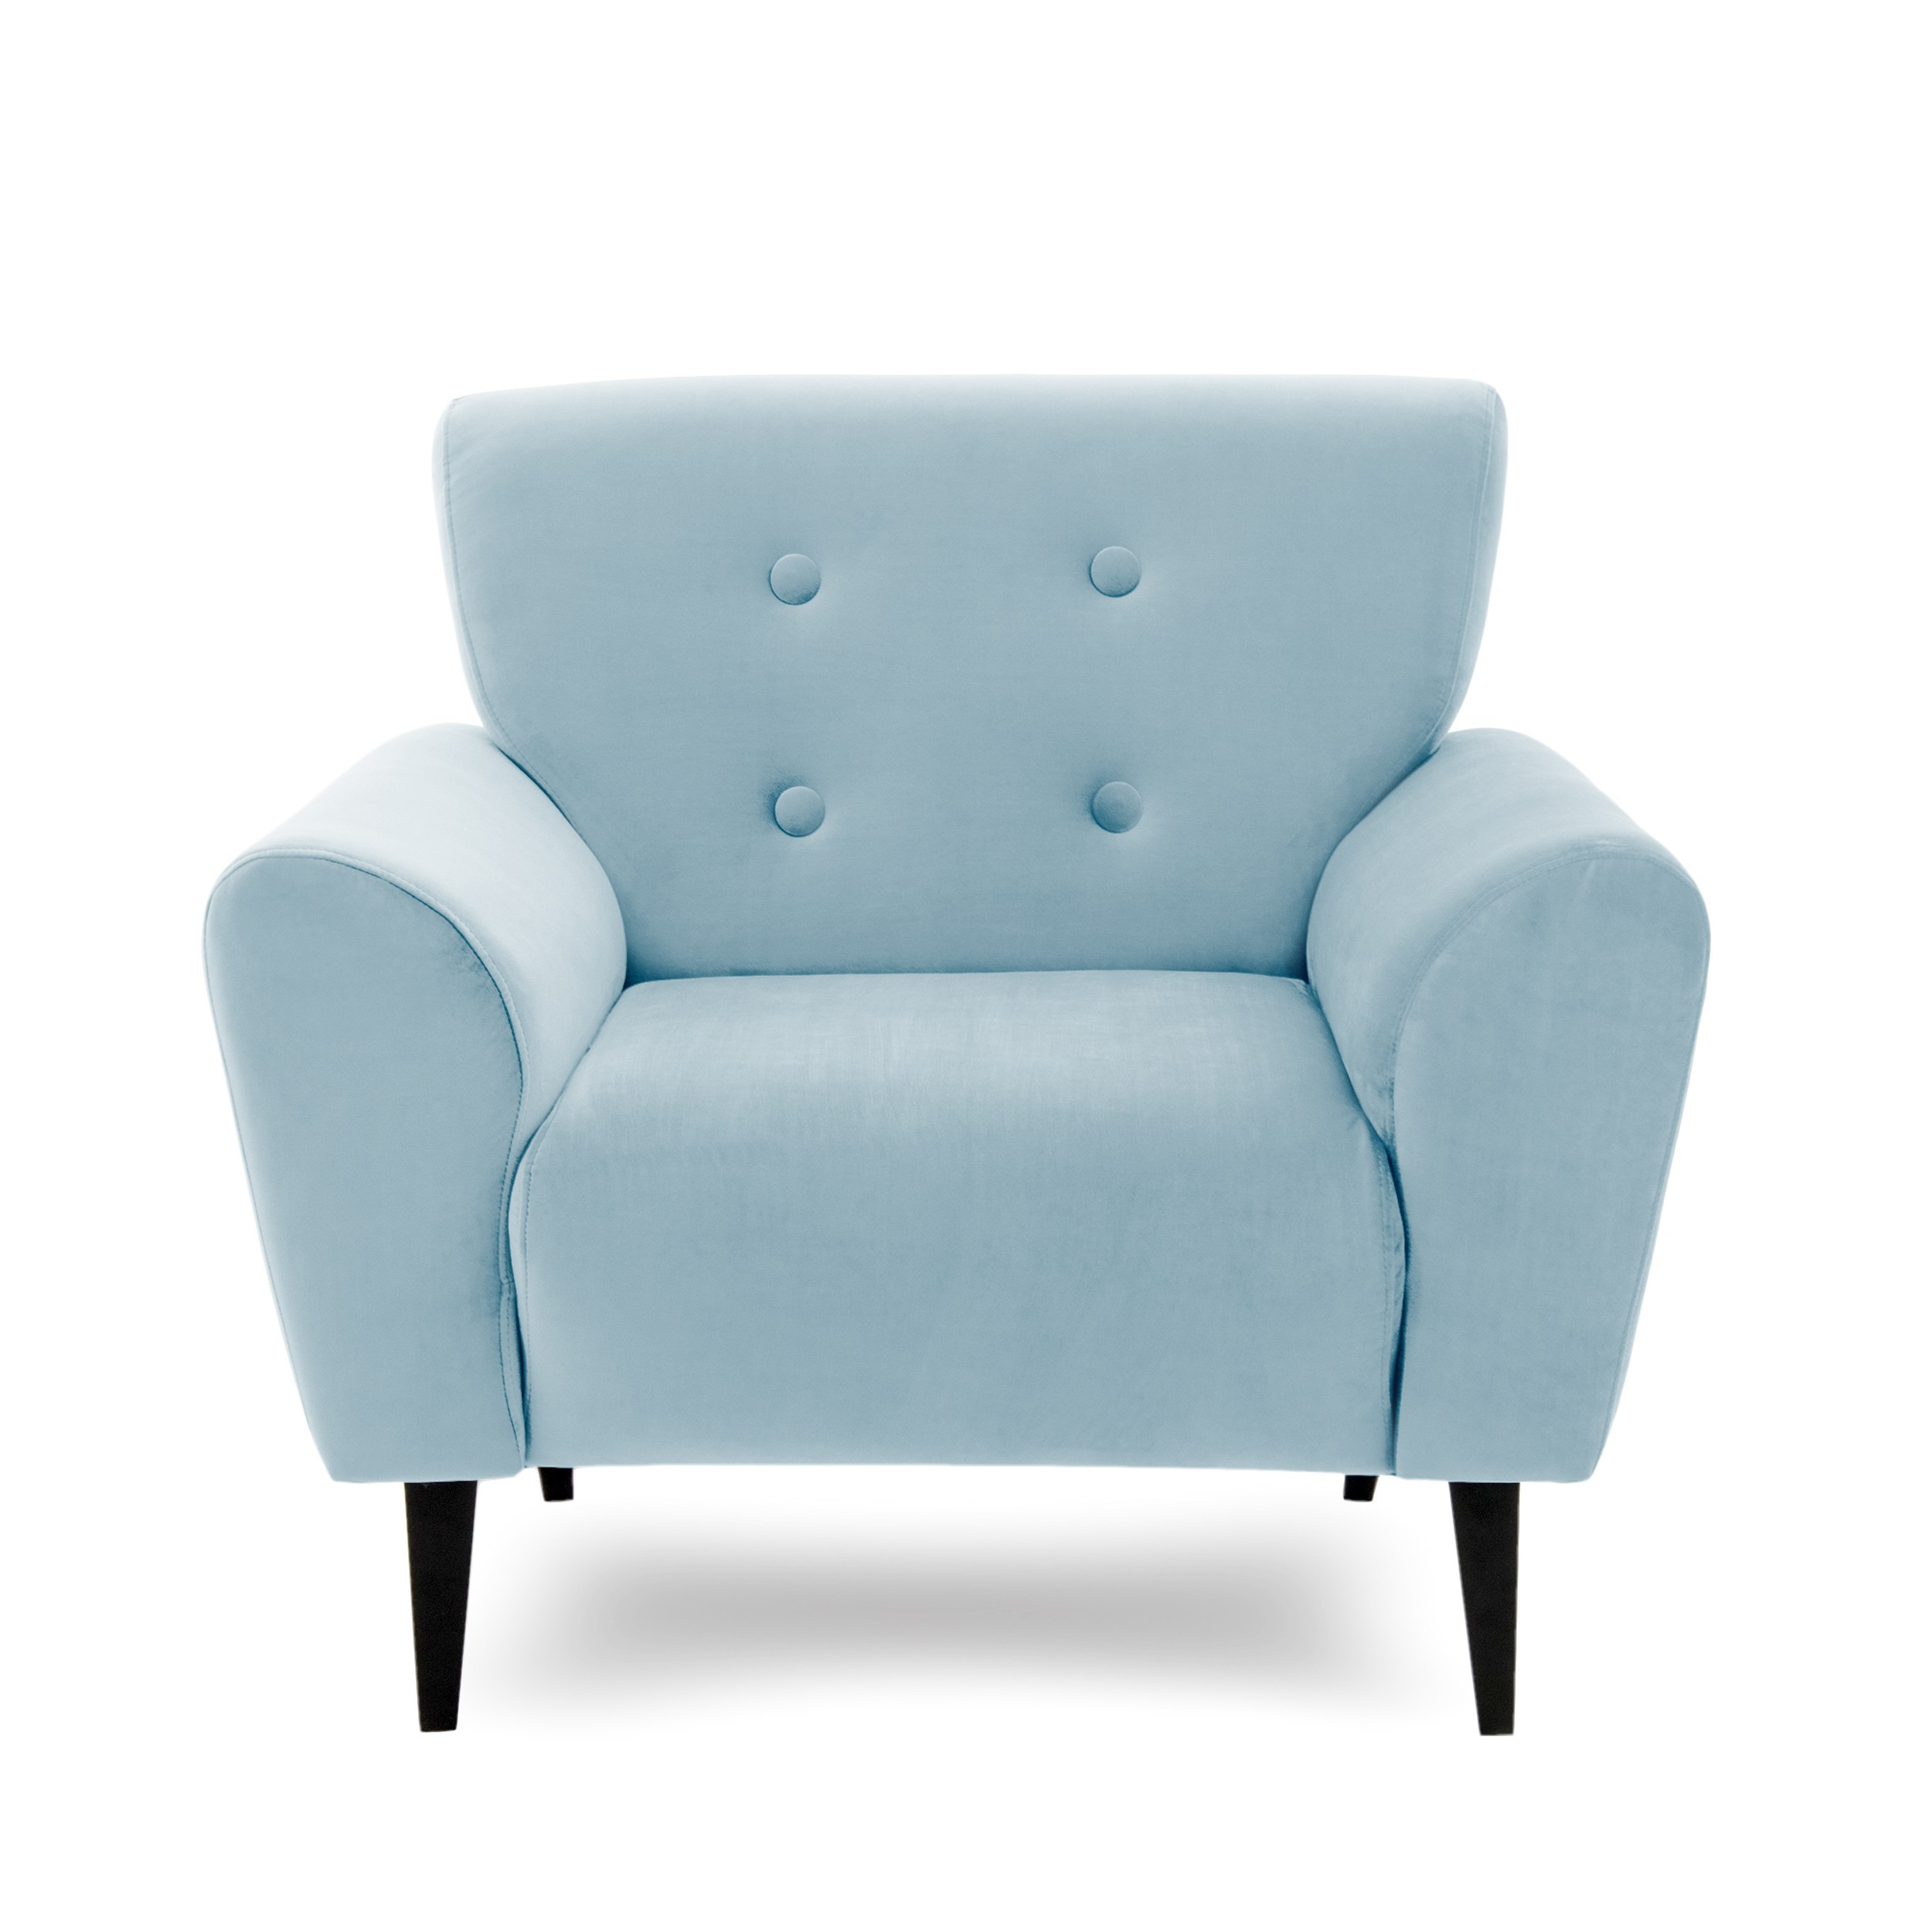 Kiara 1 Seater in Kiara Sofa Chairs